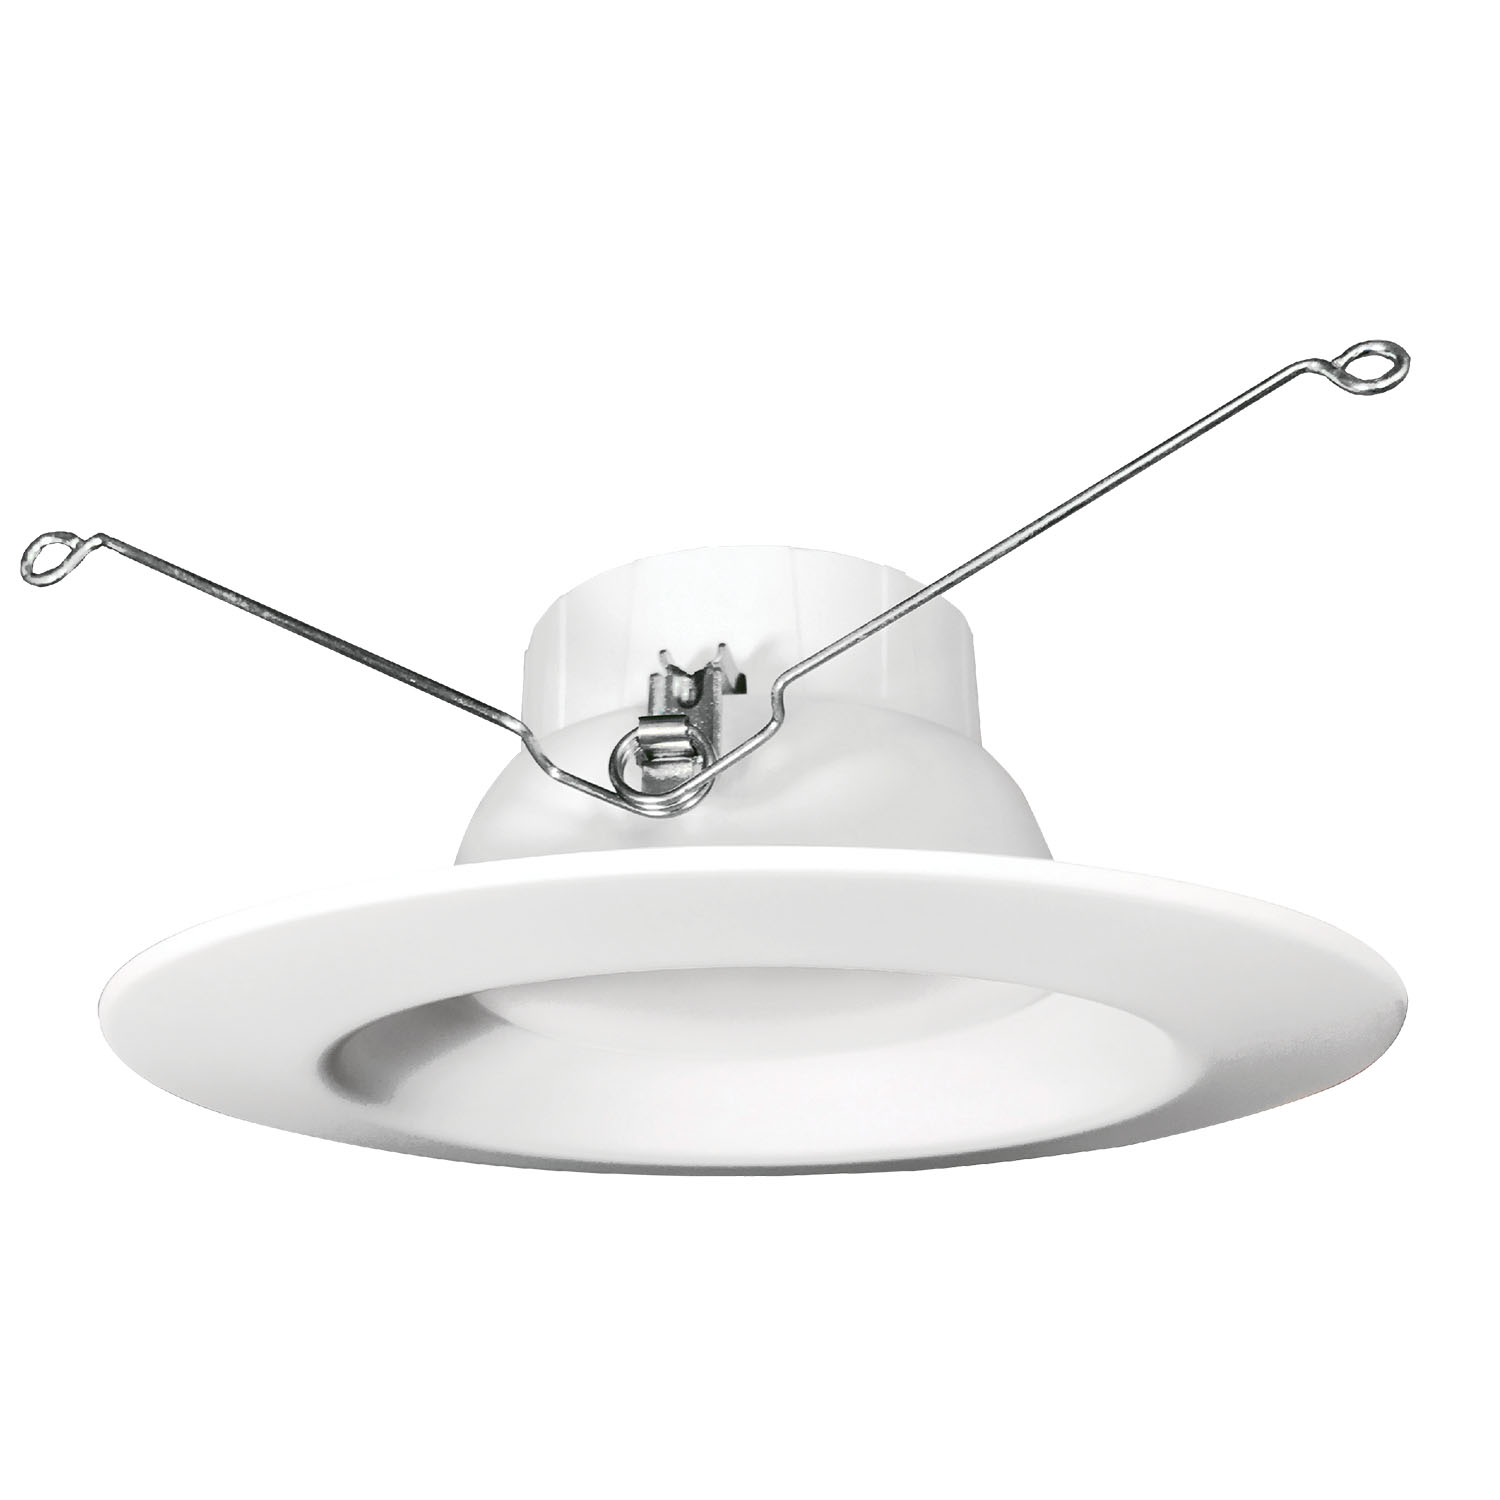 "DL6FR15/940/ECO/LED2 99647 6"" Retrofit Downlight, 15W, 4000K, Dimmable ProLED ECO Series II"